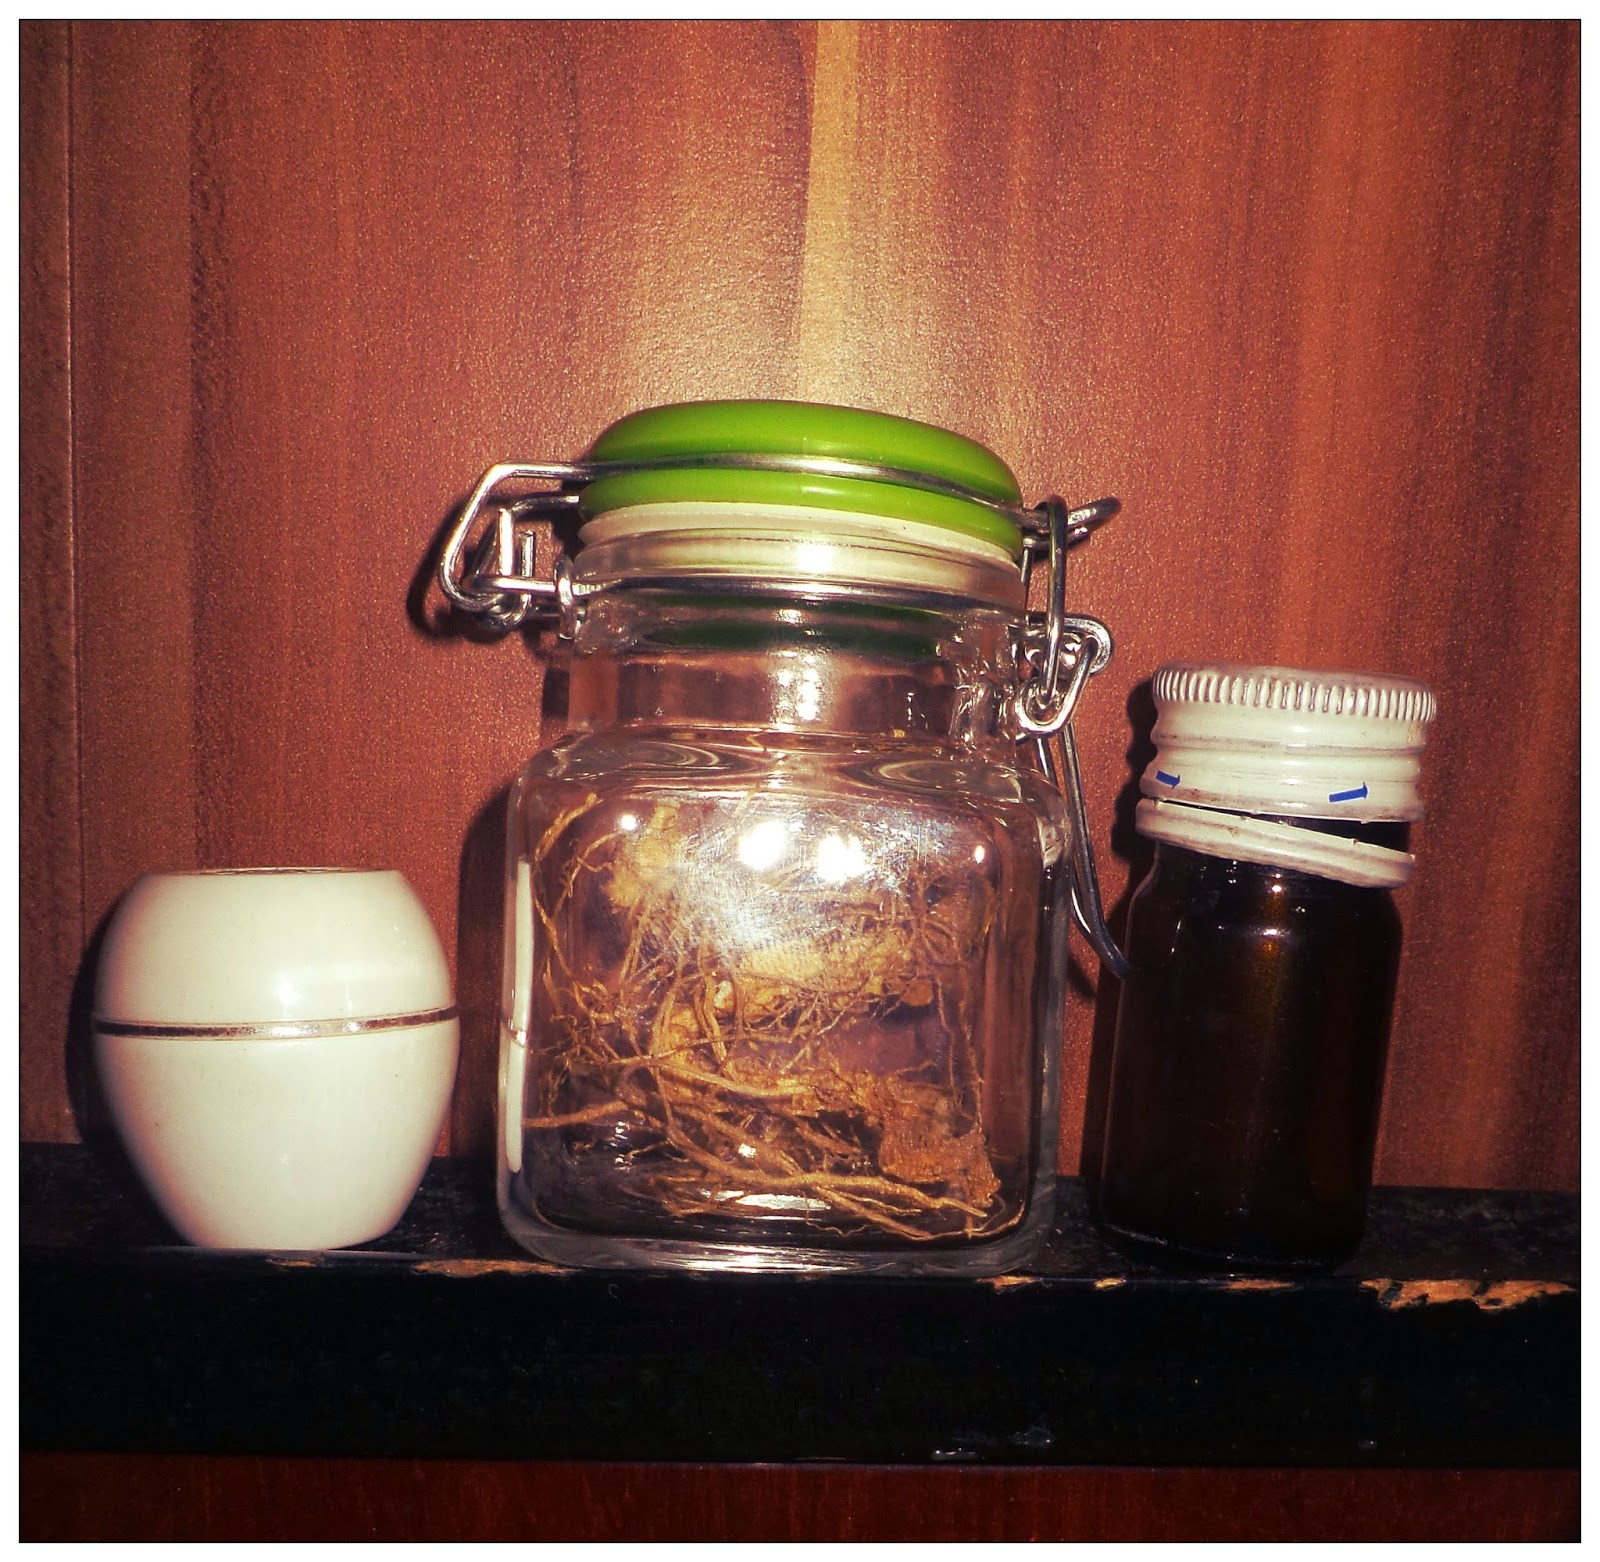 Shadows magick place: Contained jar spells, and spirit jar traps